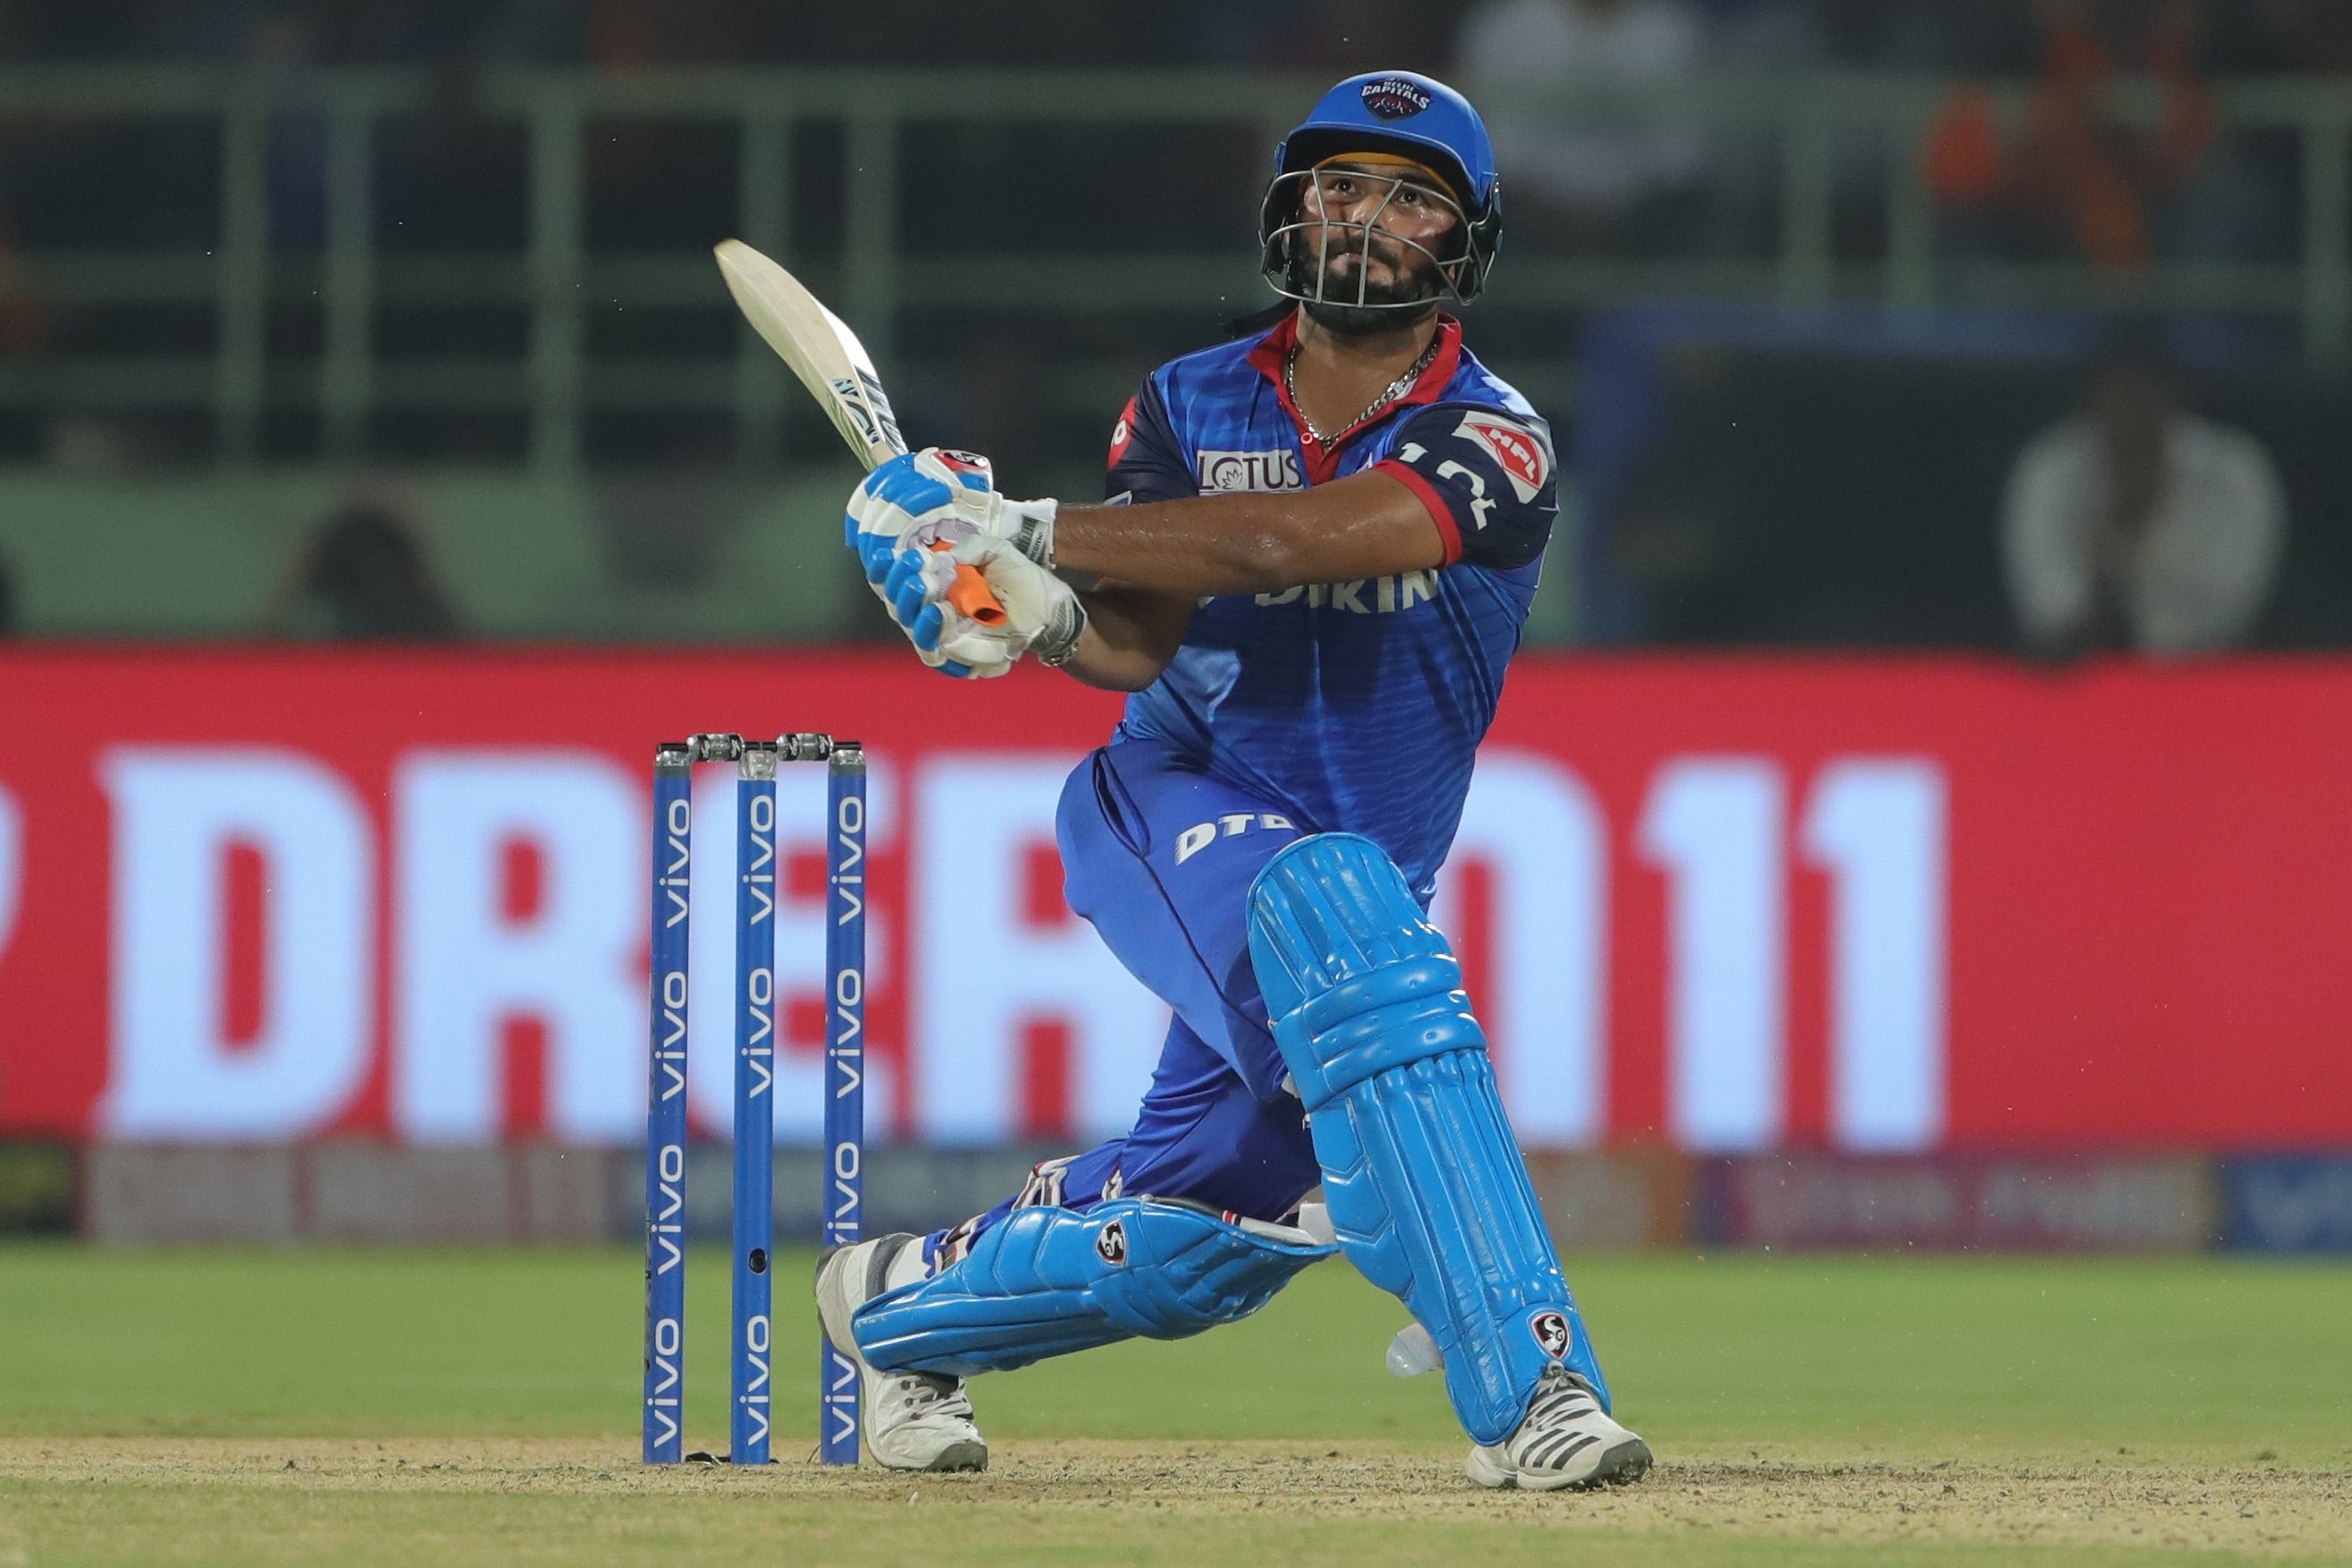 SRH, DC, 2019, IPL 2019, Rishab Pant, Playoffs, News Mobile, News Mobile India